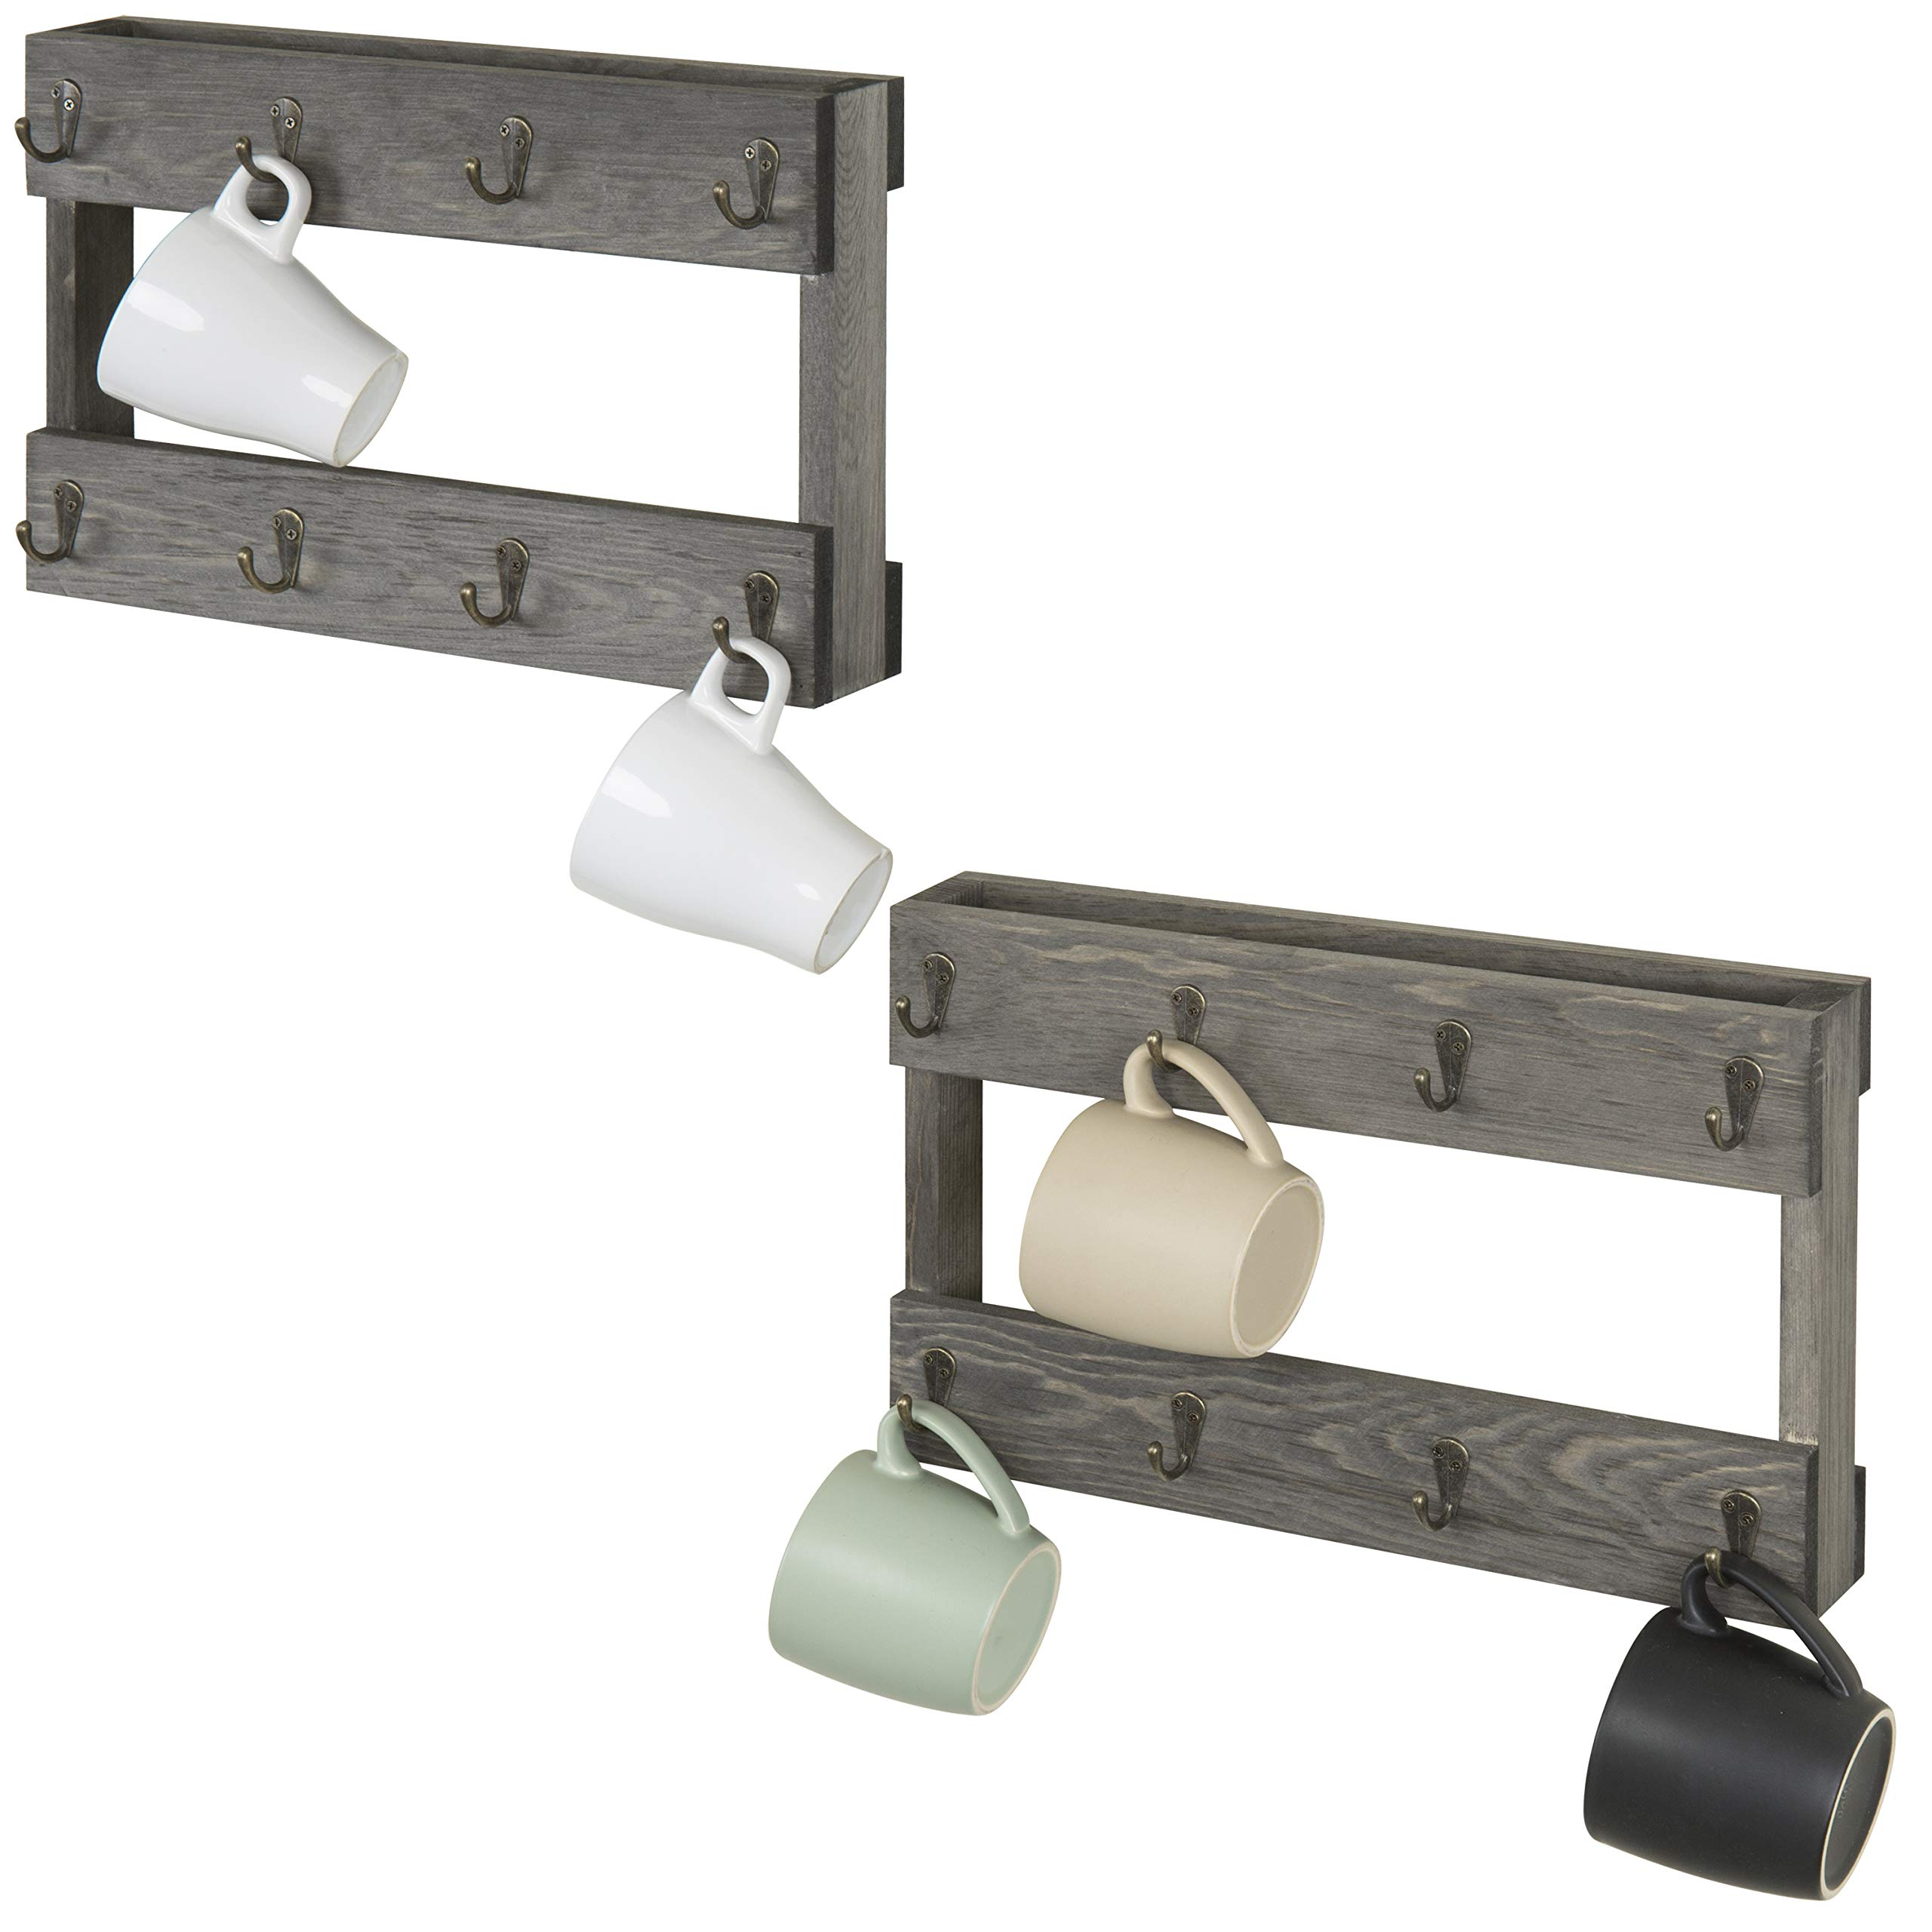 MyGift 8-Hook Wall Mounted Vintage Grey Wood Coffee Mug Hanging Rack, Set of 2 by MyGift